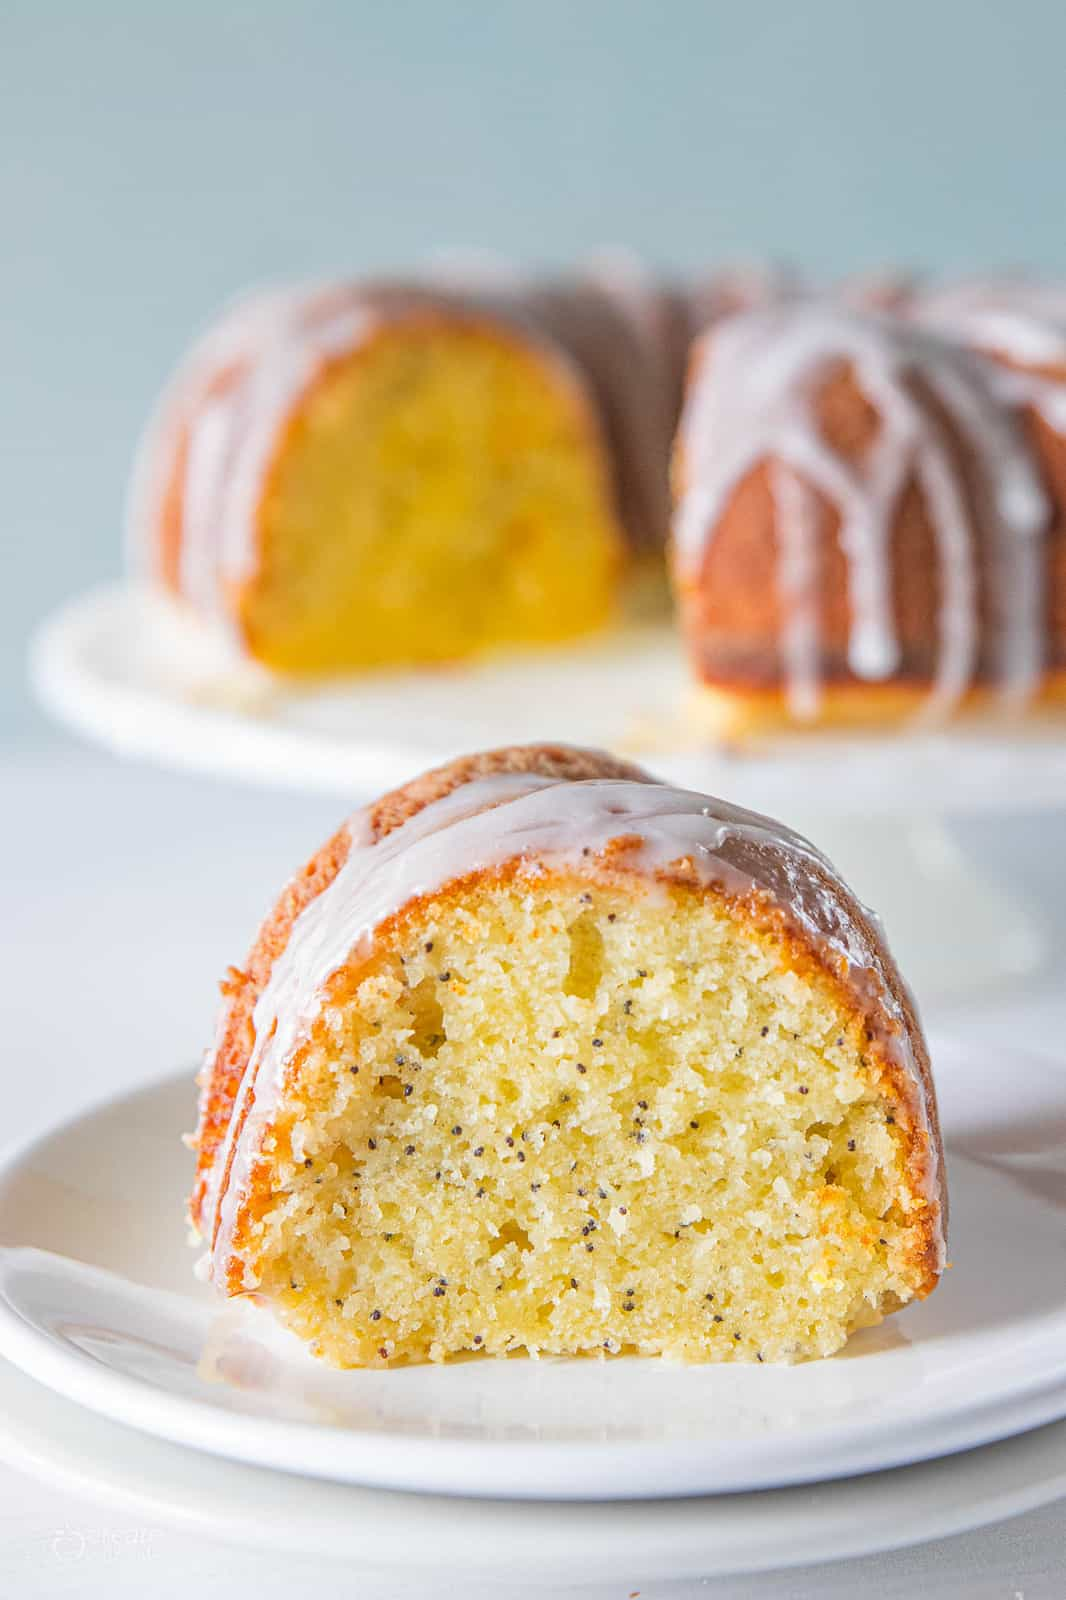 slice of lemon poppyseed cake drizzled with icing on plate